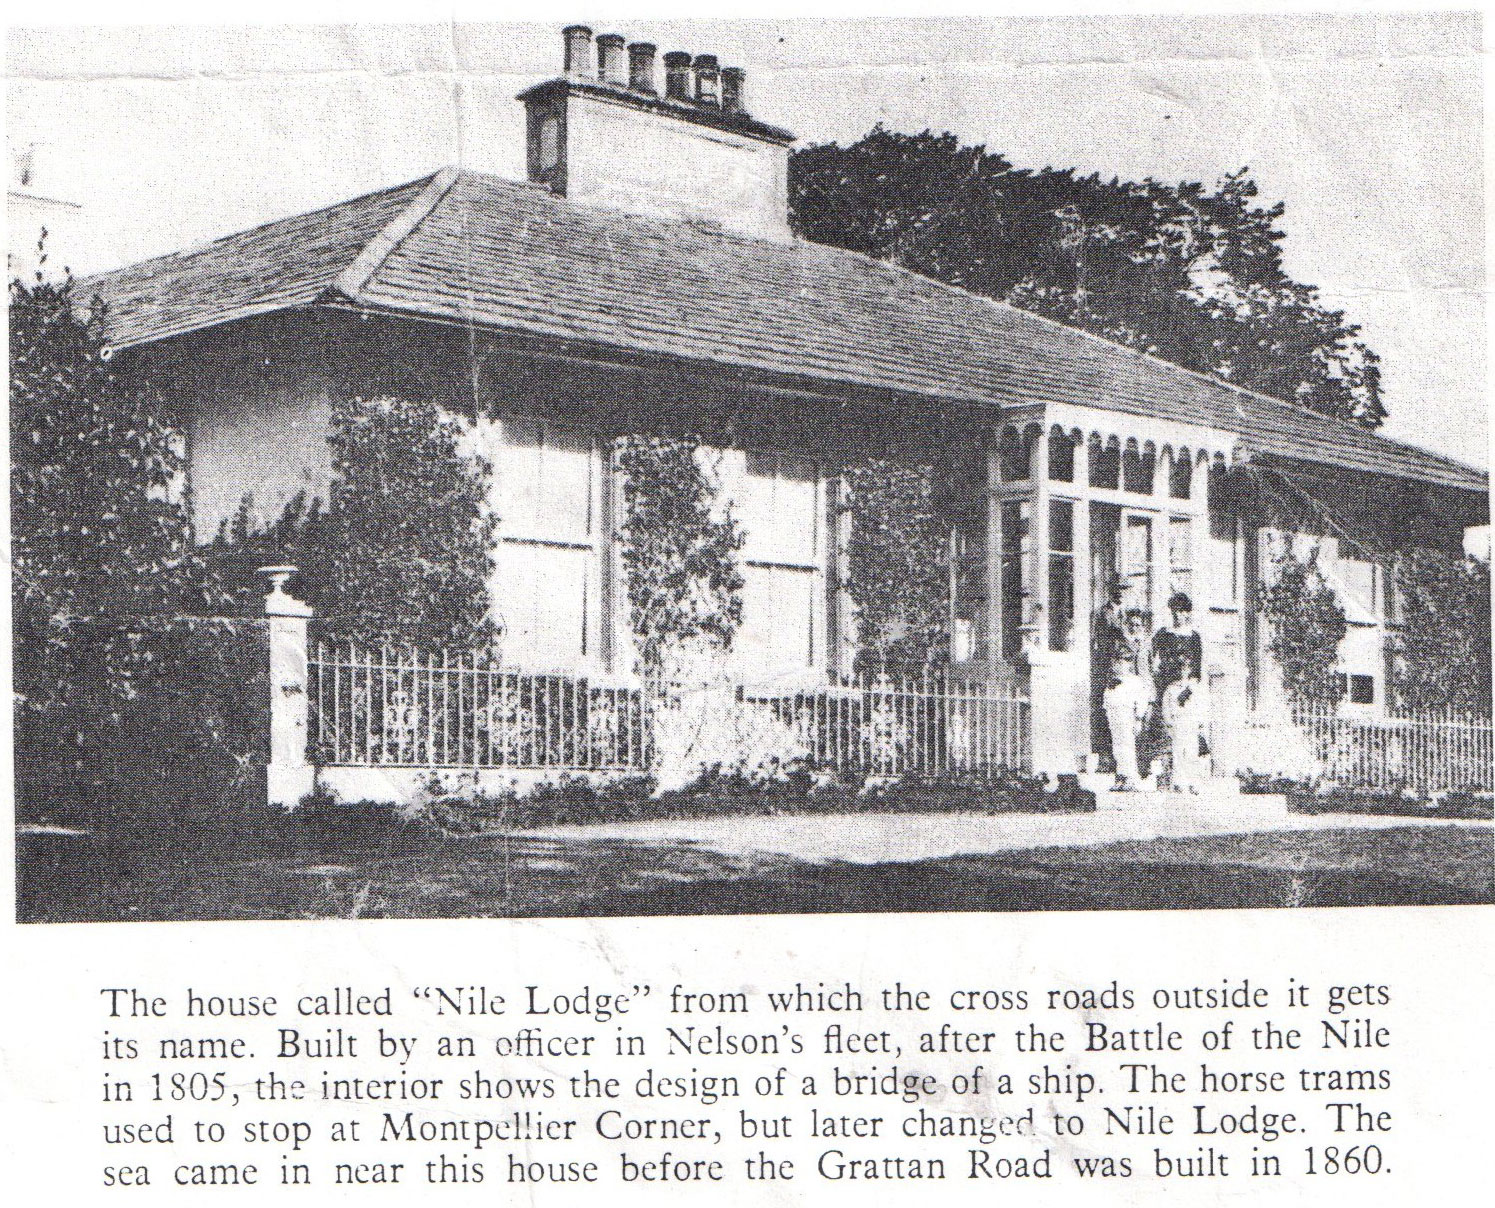 History of Nile Lodge House Galway